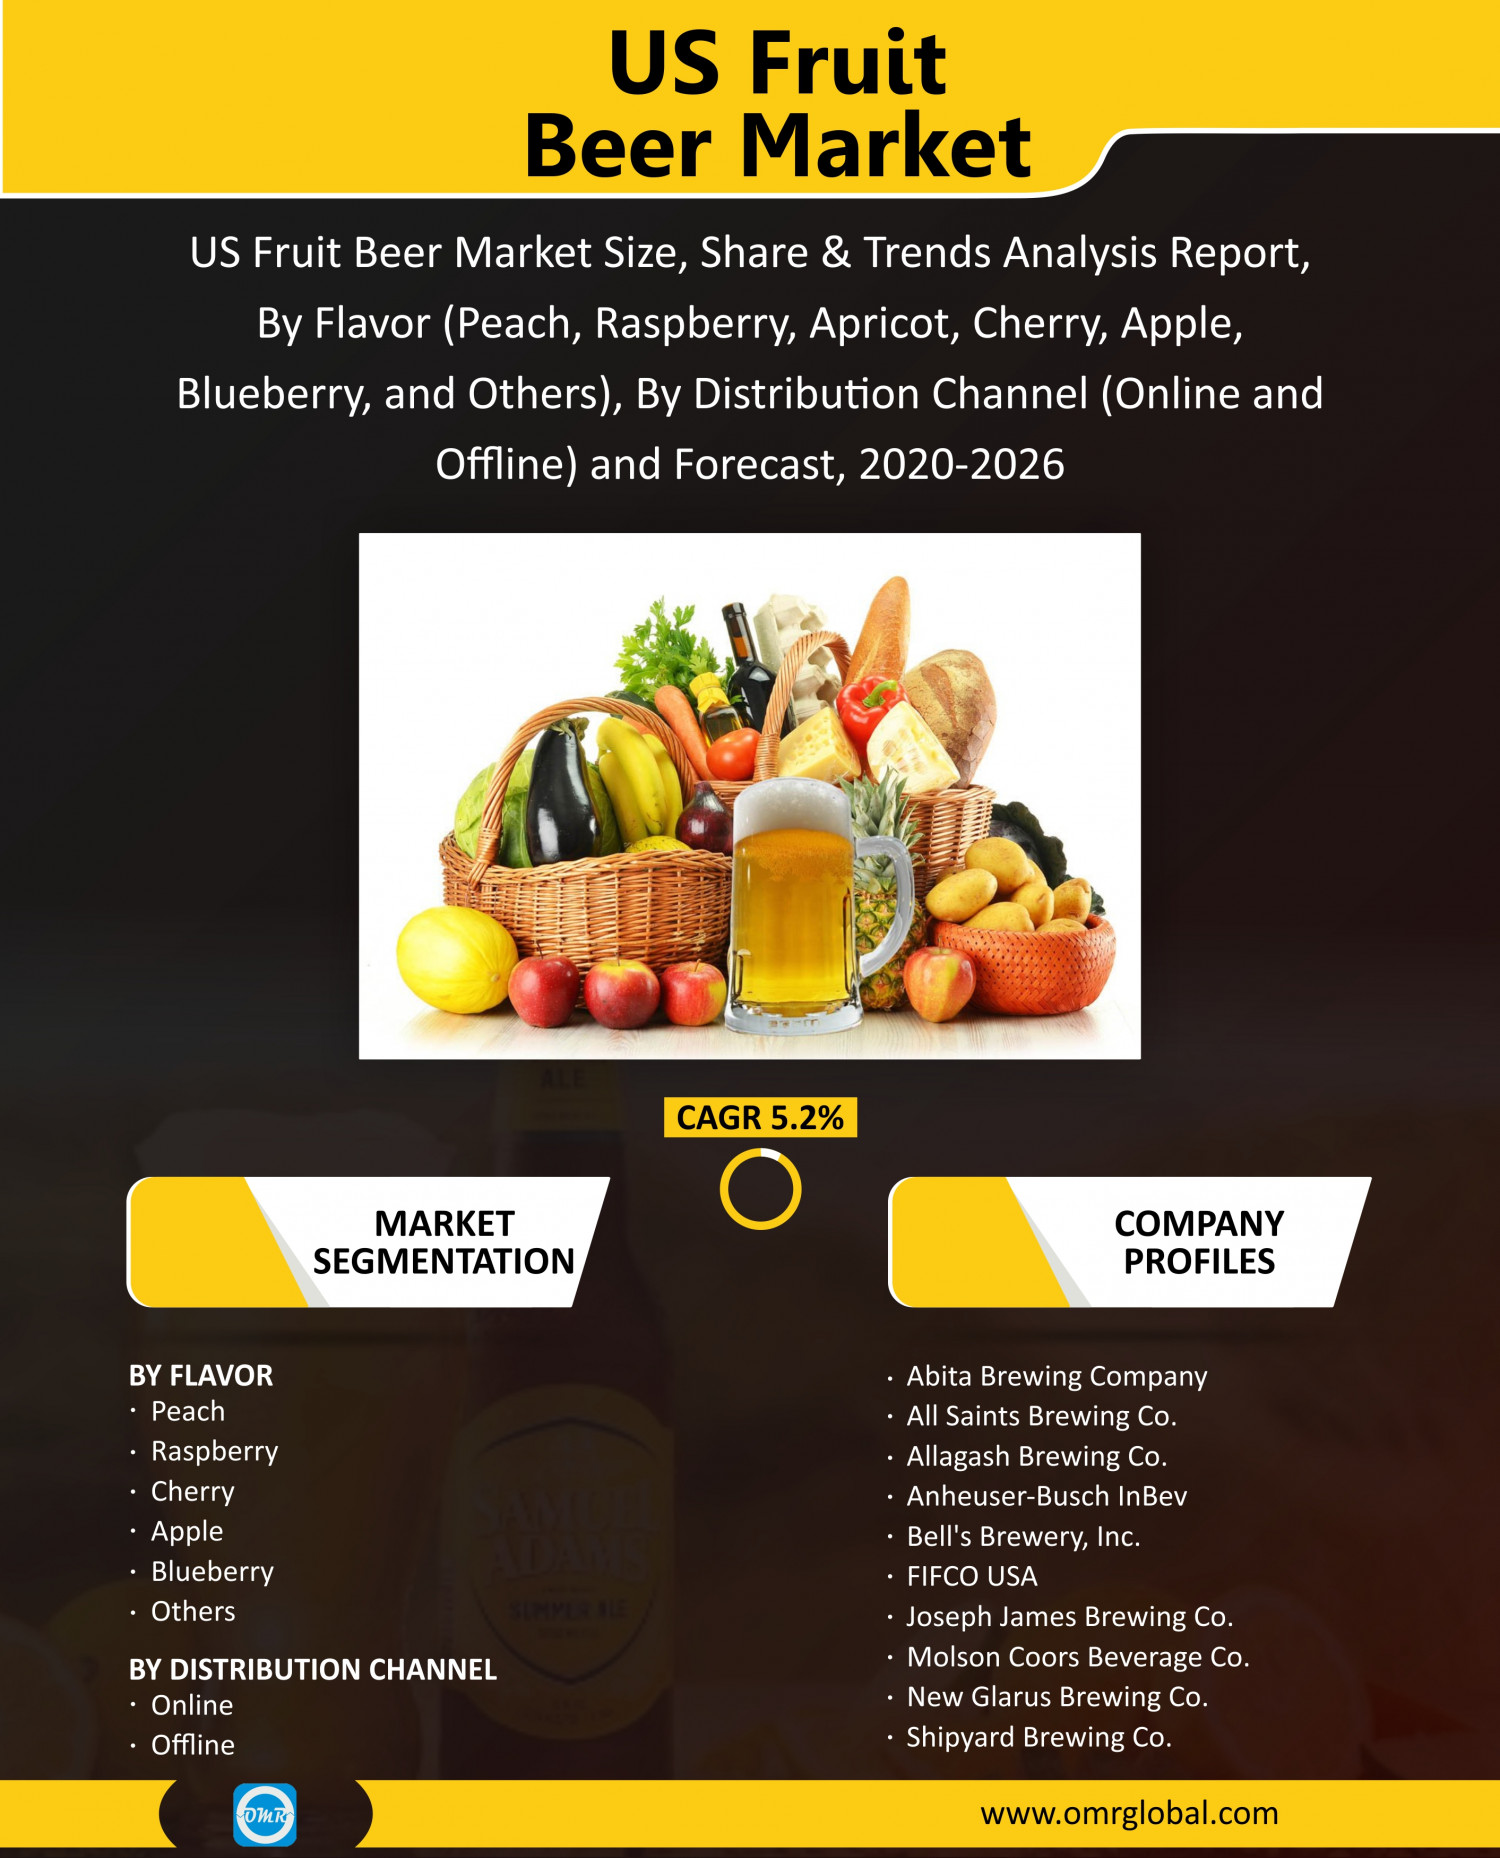 US Fruit Beer Market Size, Share, Growth, Research and Forecast 2020-2026 Infographic